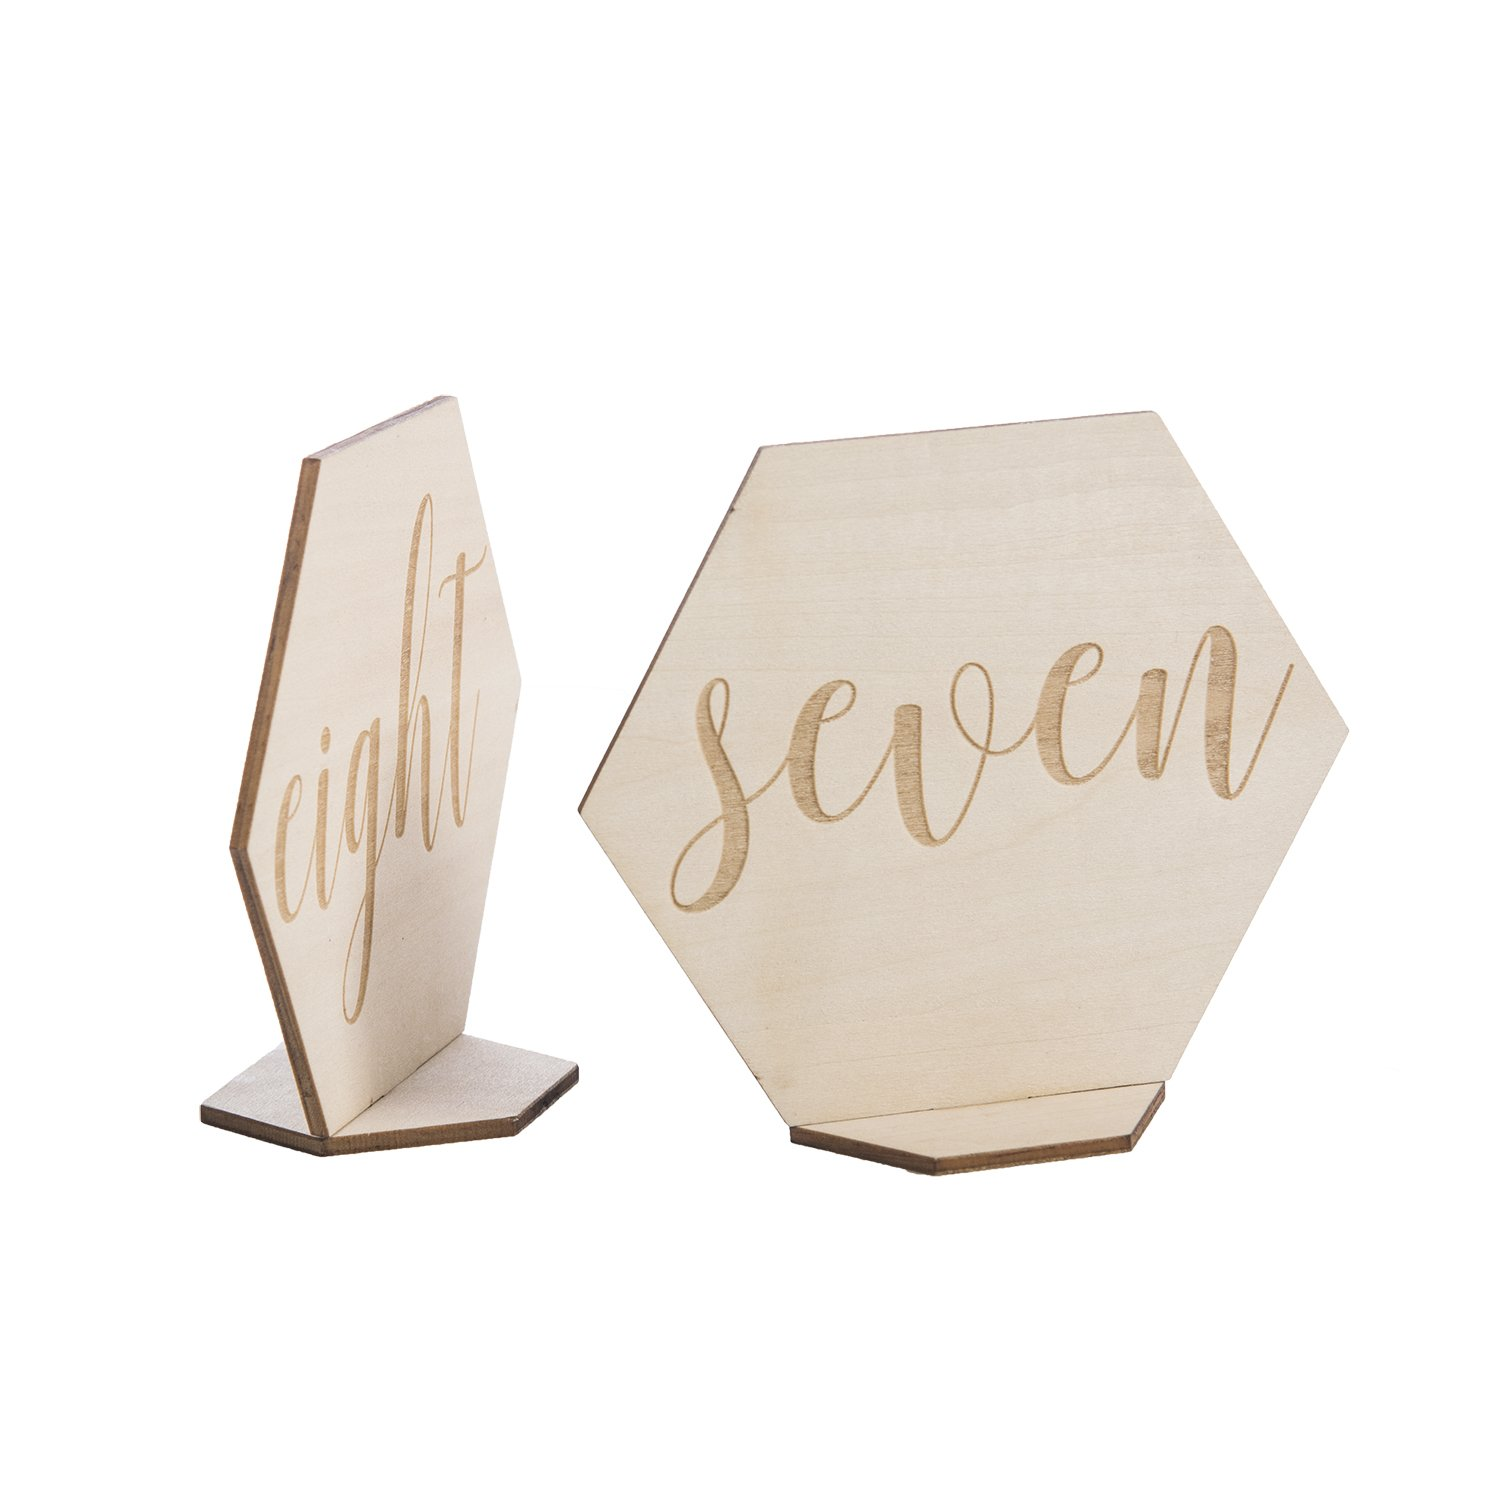 Ling's moment Vintage Elegant Hexagon Diamond Shape 1-15 Wood Table Number Cards Double-Sided Standing Place Card Holders for Wedding Party Bridal Shower Table Decor by Ling's moment (Image #1)